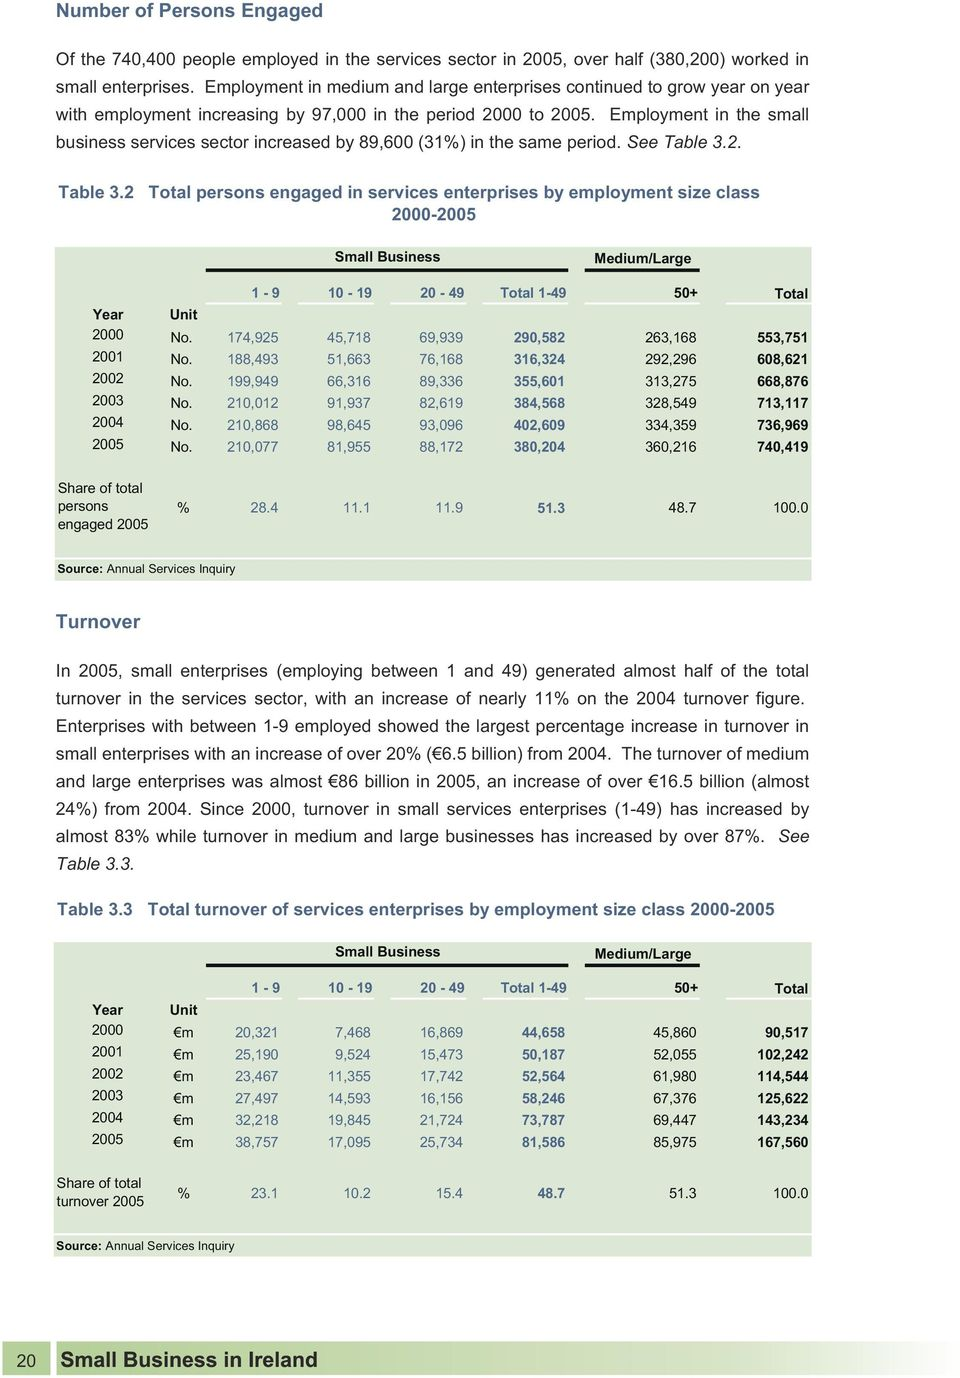 Employment in the small business services sector increased by 89,600 (31%) in the same period. See Table 3.